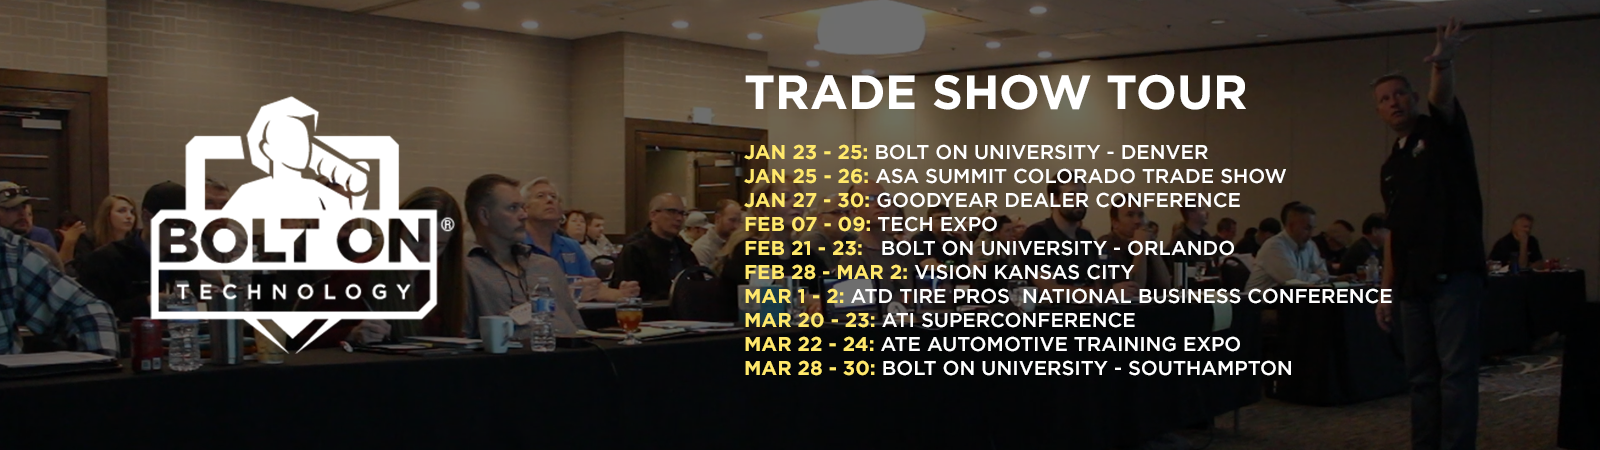 BOLT ON Trade Show Tour